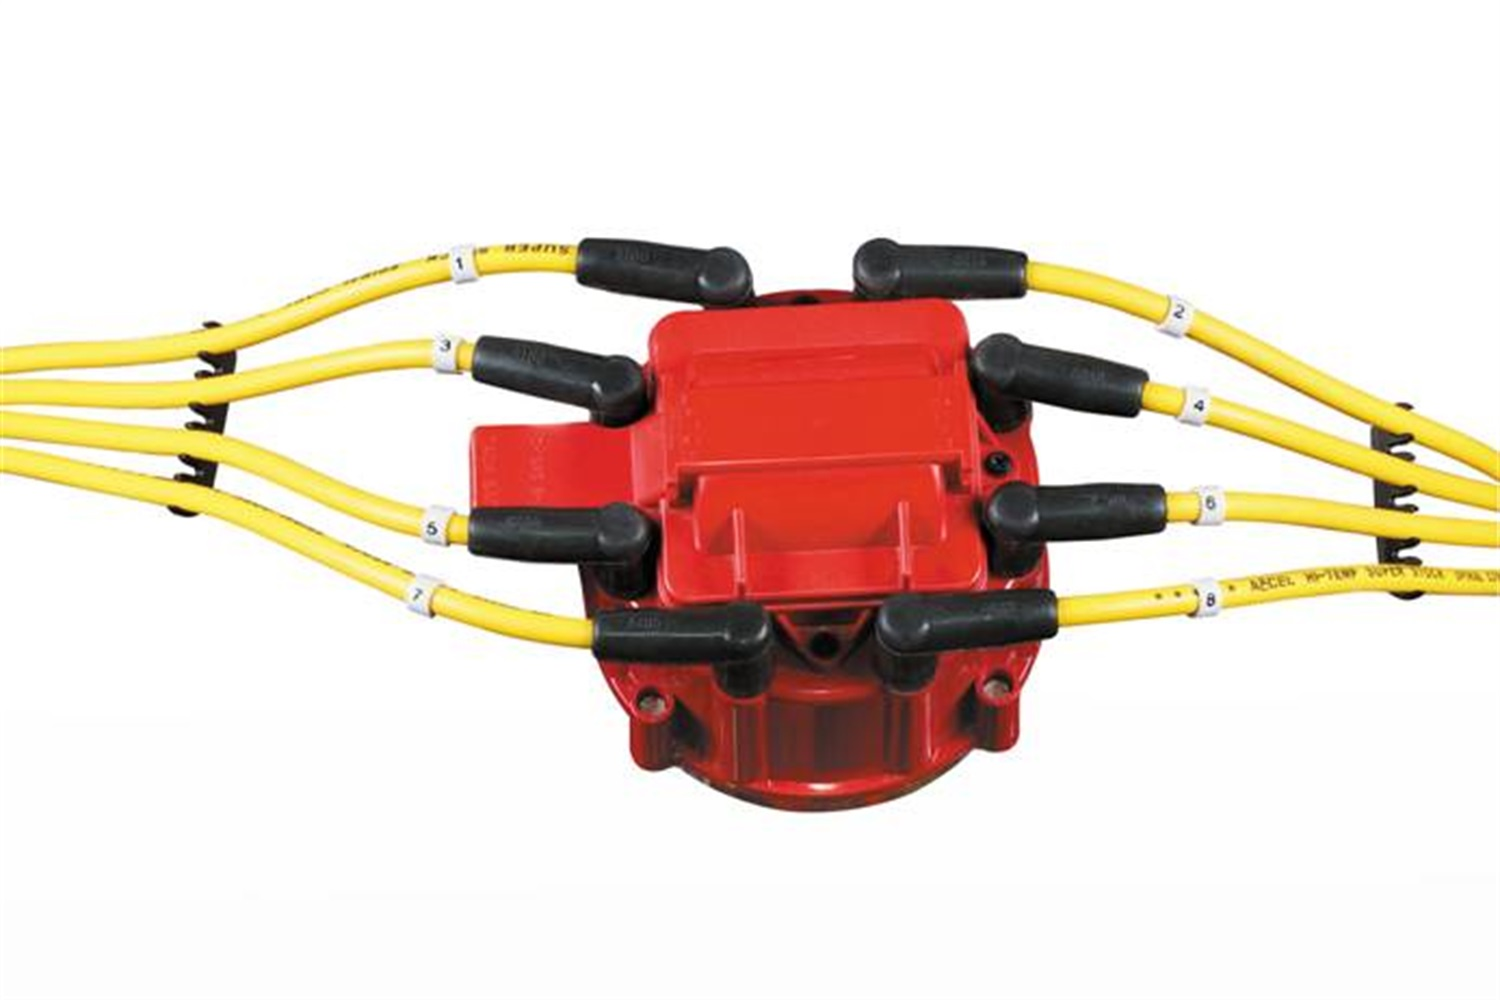 accel hei distributor wiring diagram pool pump manual 8141r corrected cap for gm red autoplicity